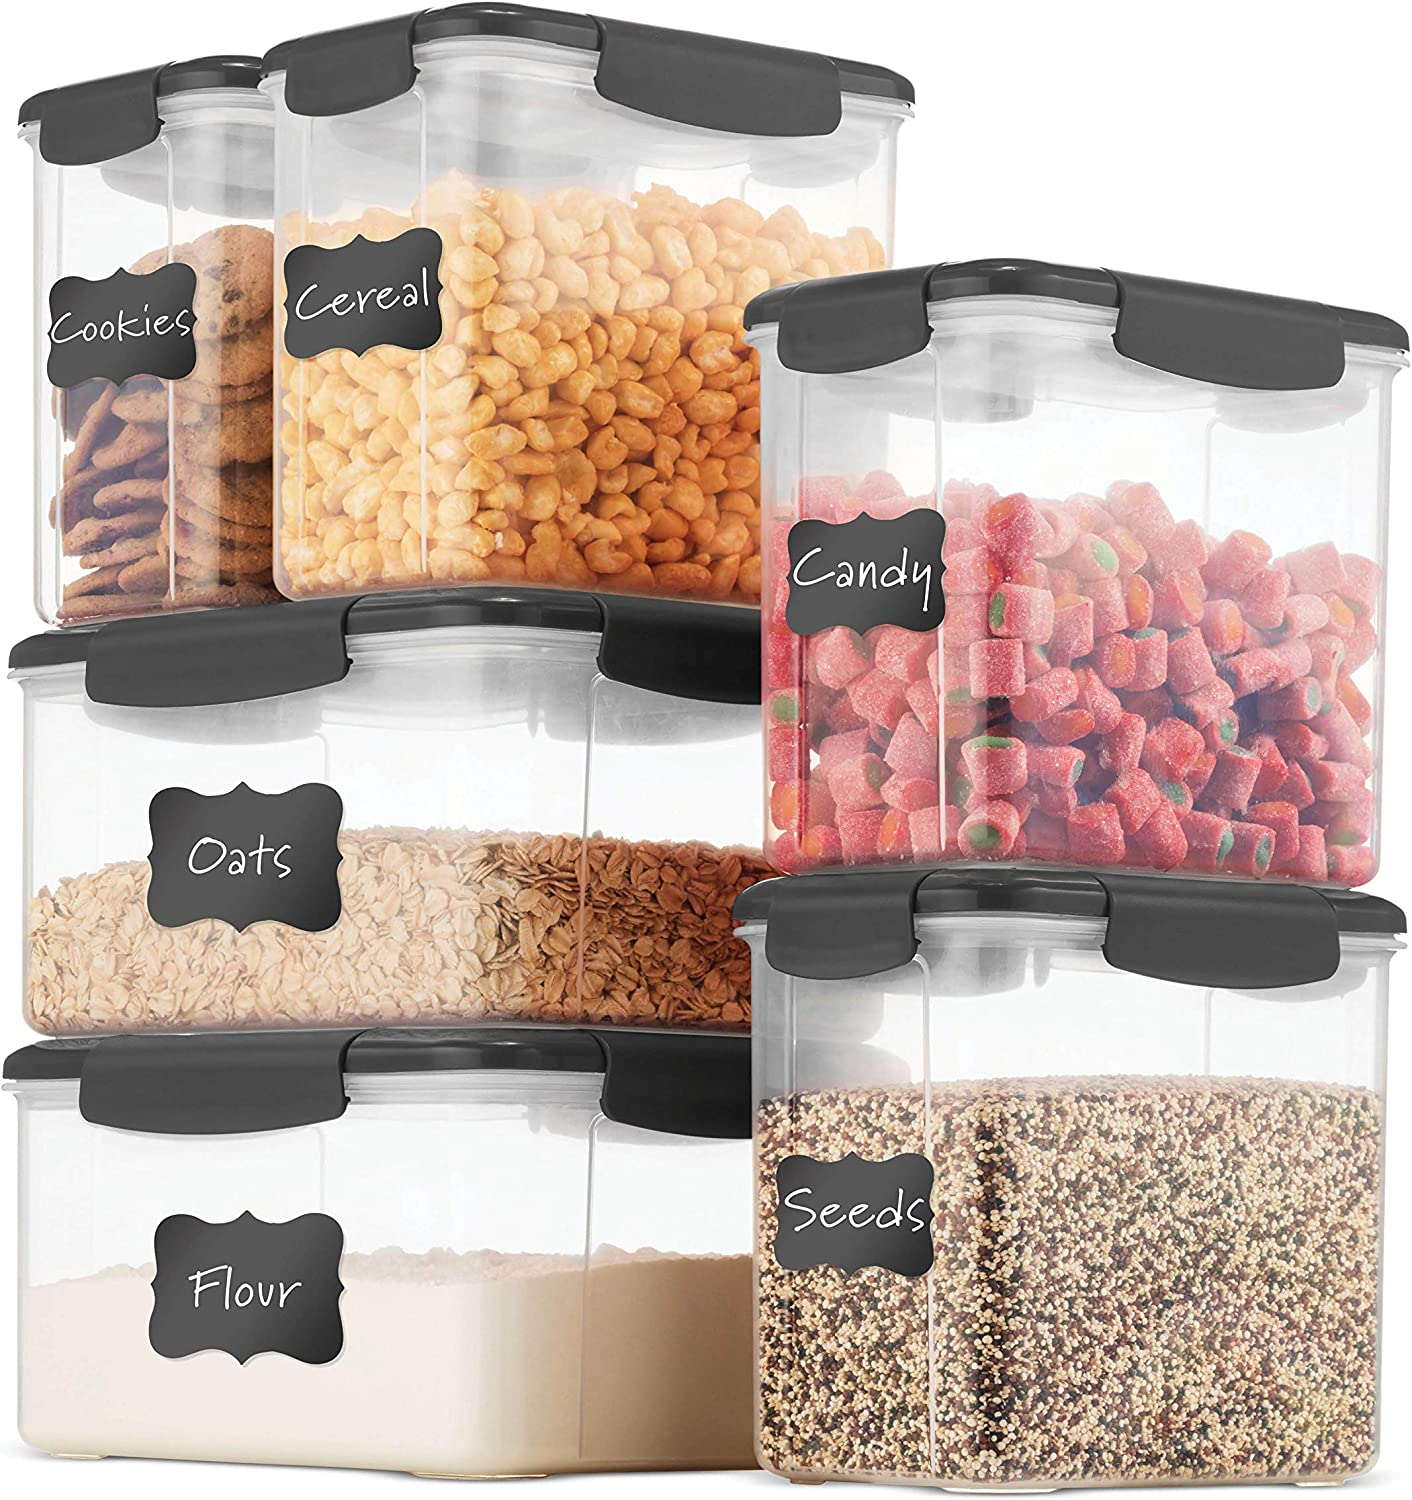 Airtight Food Storage Containers With Lids [6 Piece] BPA Free & 100% Leak Proof Food Containers Set - Dry Food Storage Container Set For Cereal, Flour, Sugar, Coffee, Rice, Nuts, Snacks, Pet Food